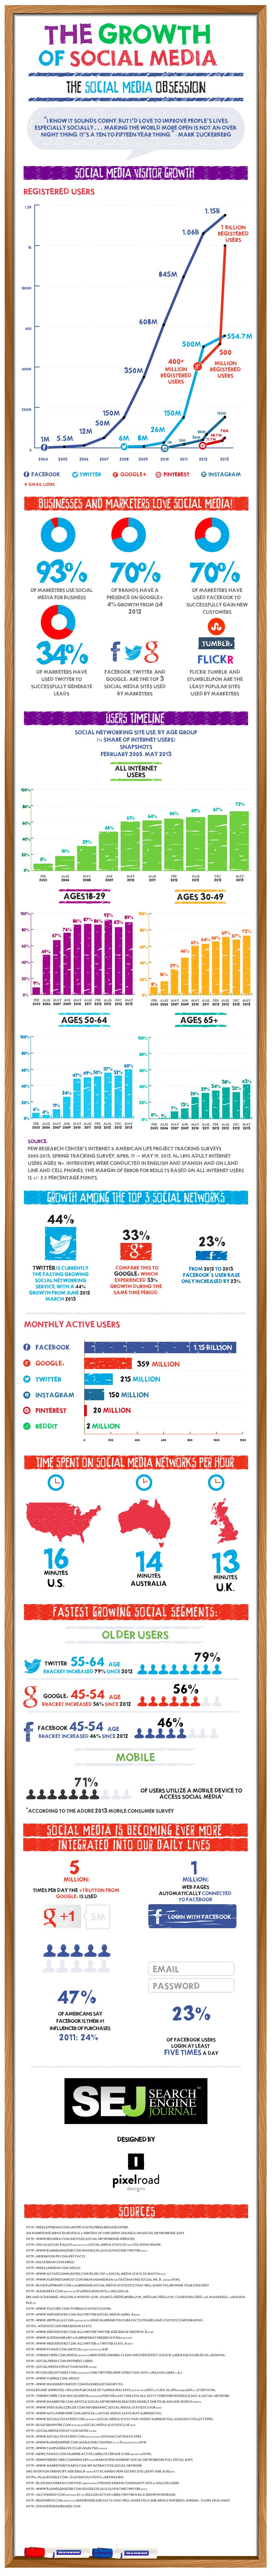 22 Social Media Facts and Statistics You Should Know in 2014